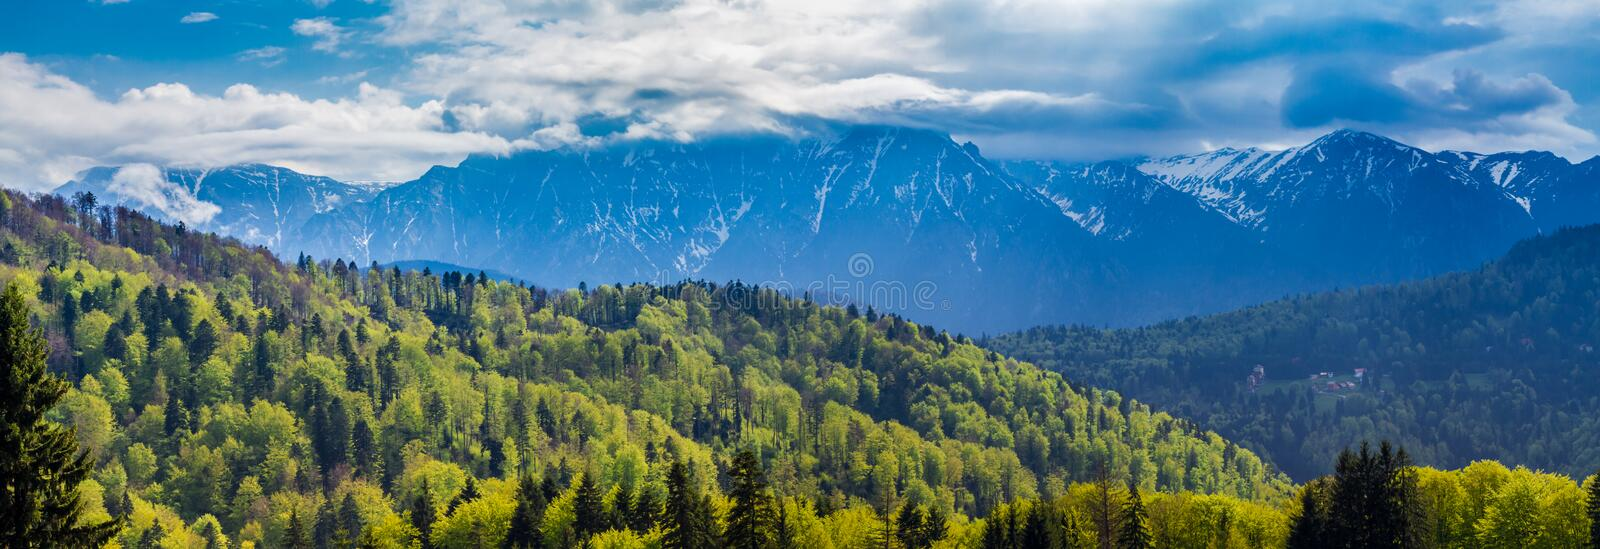 Romania, Predeal. the snowy Bucegi mountains and the green forests at their base seen from Predeal royalty free stock photo